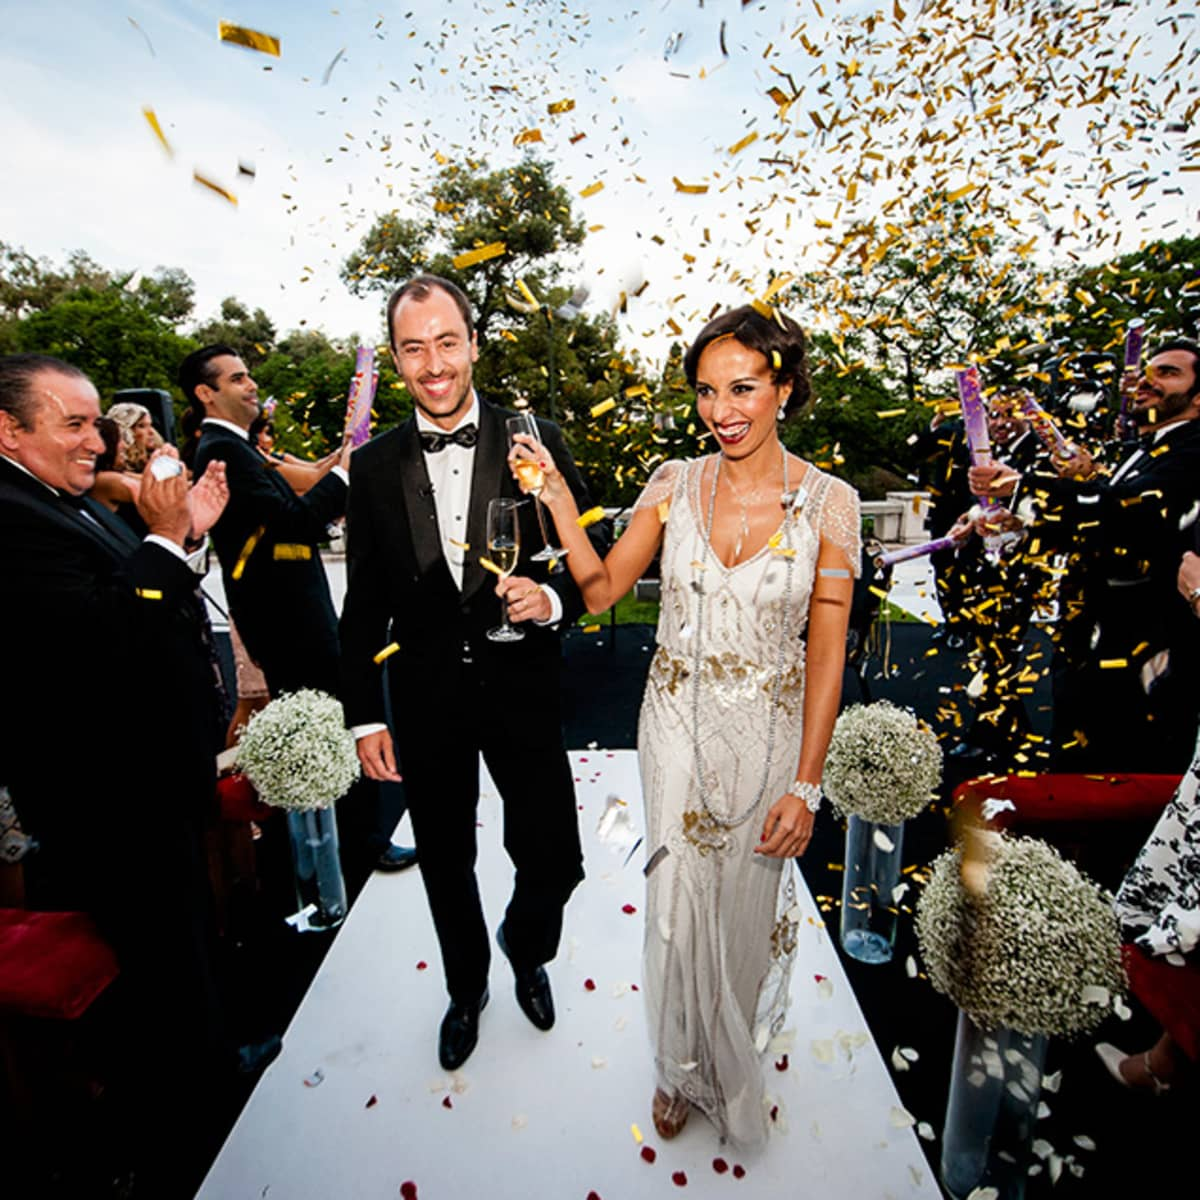 Great gatsby wedding in lisbon four seasons hotel lisbon after the ceremony alexandre and sandra celebrate as they return up the aisle as husband junglespirit Choice Image